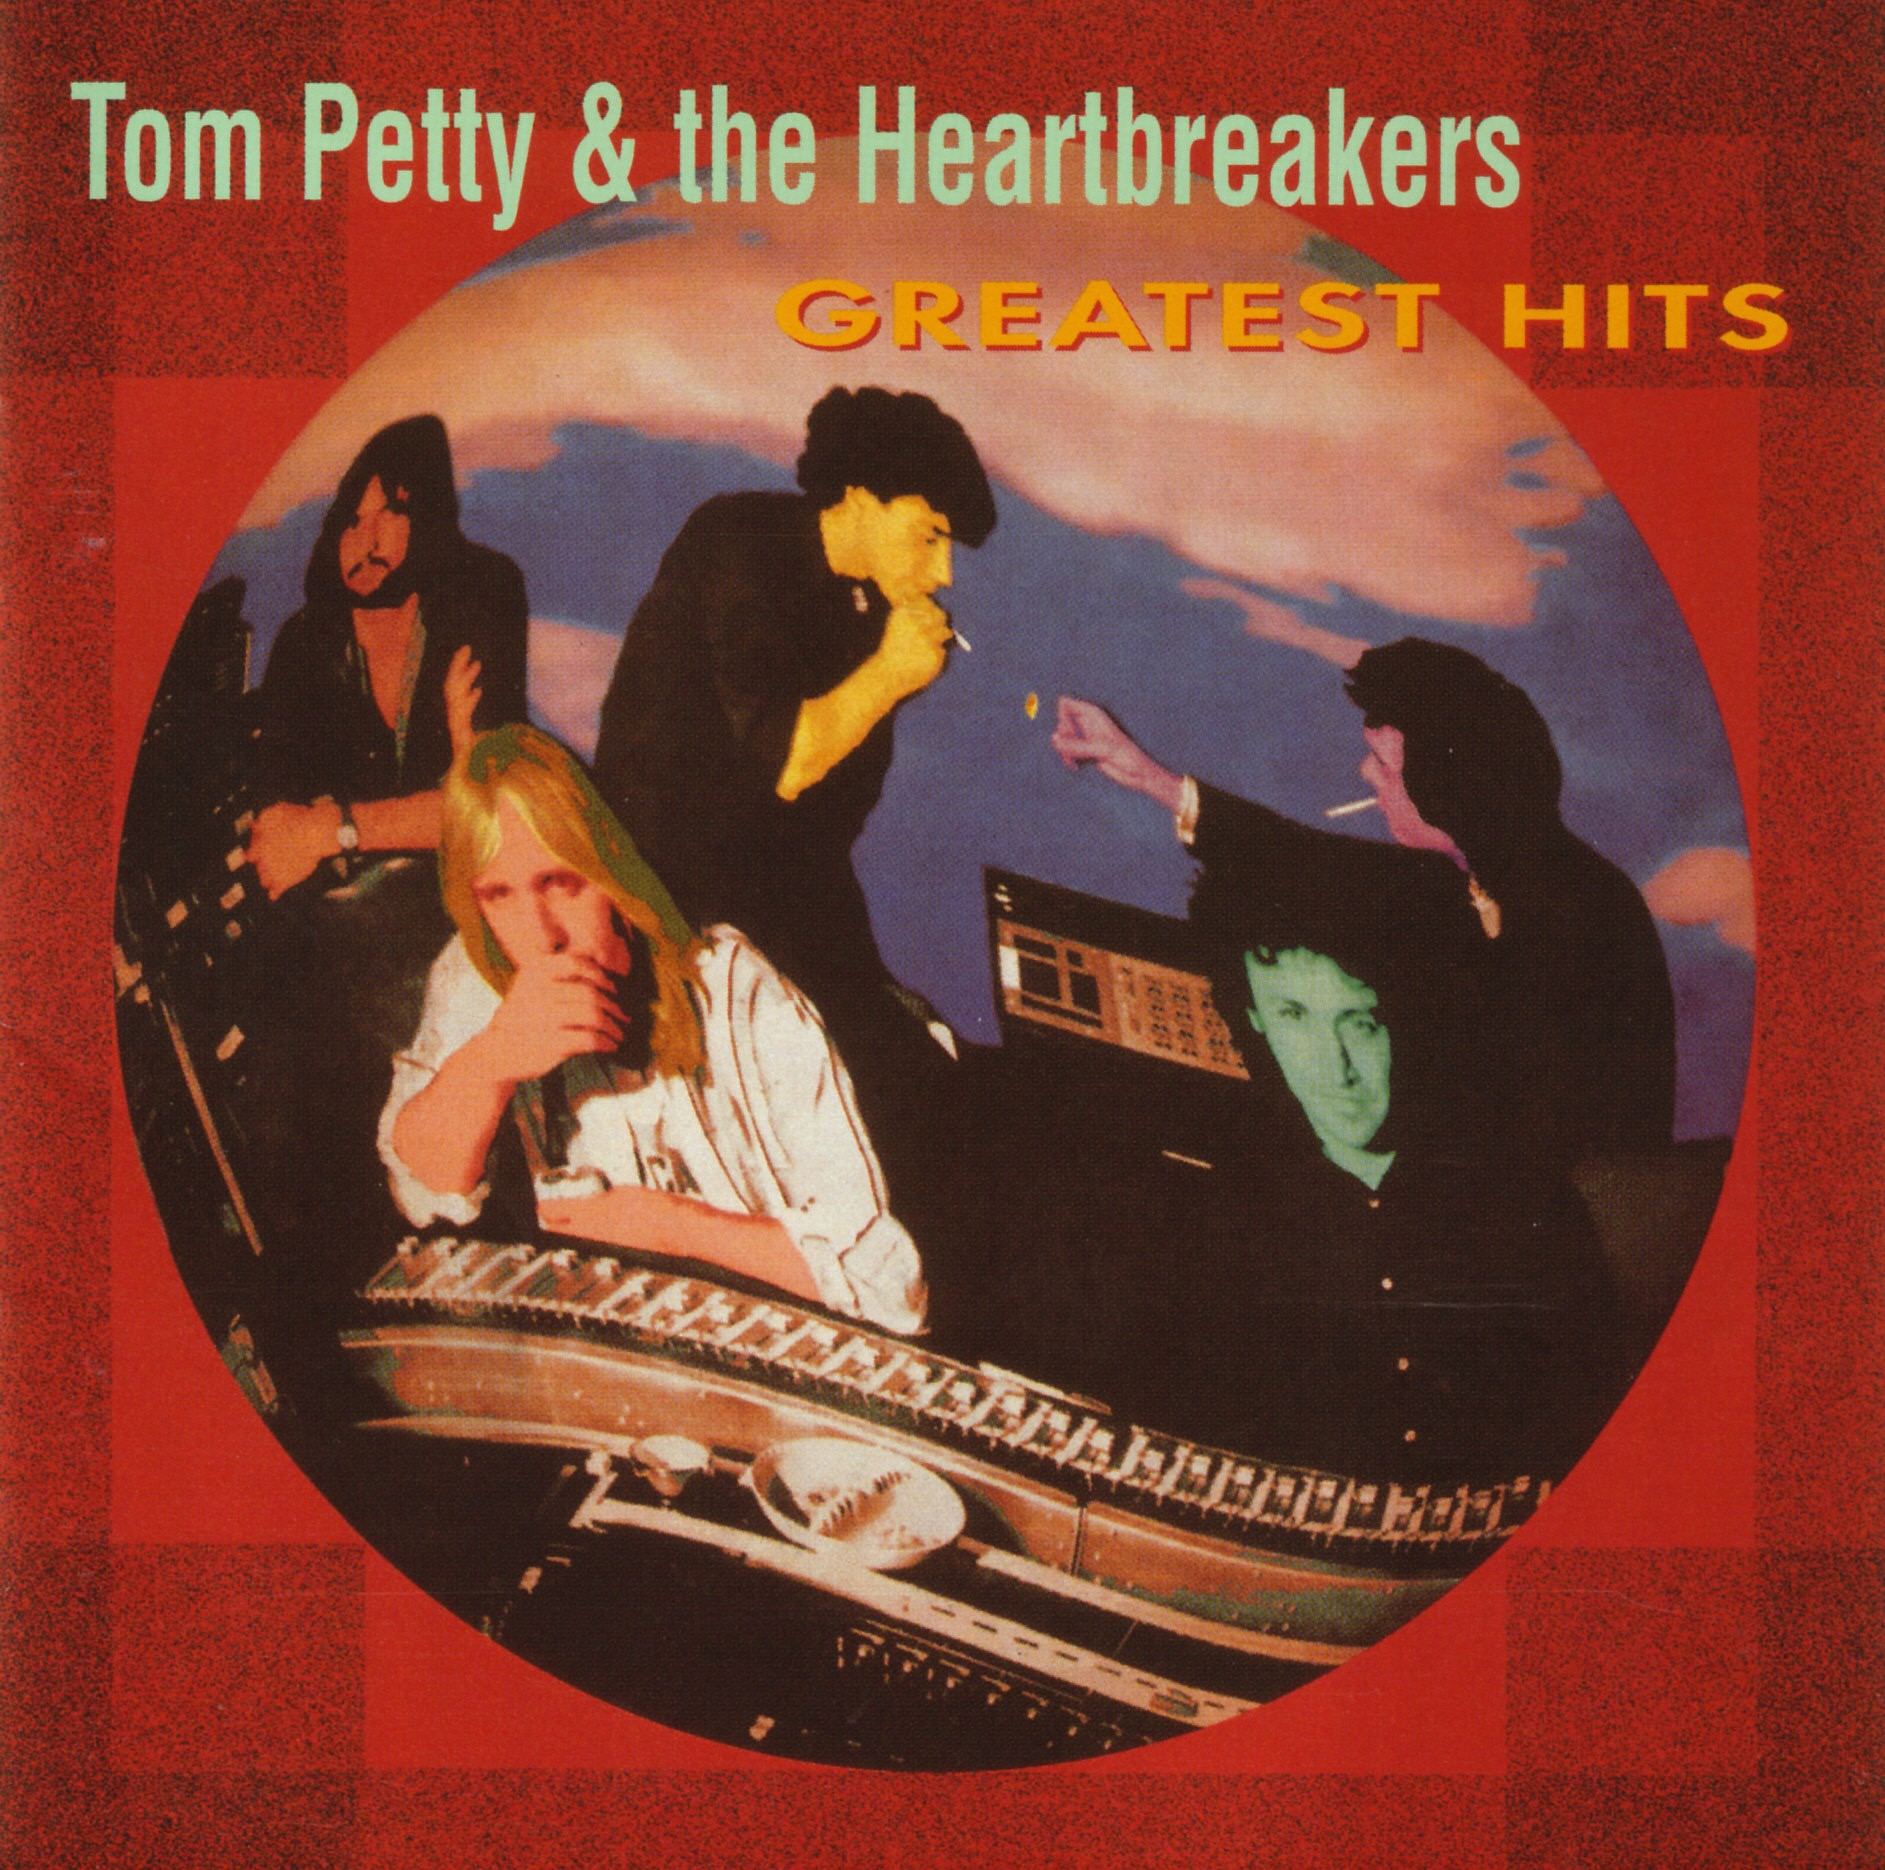 Tom Petty And The Heartbreakers - Greatest Hits 2XLP